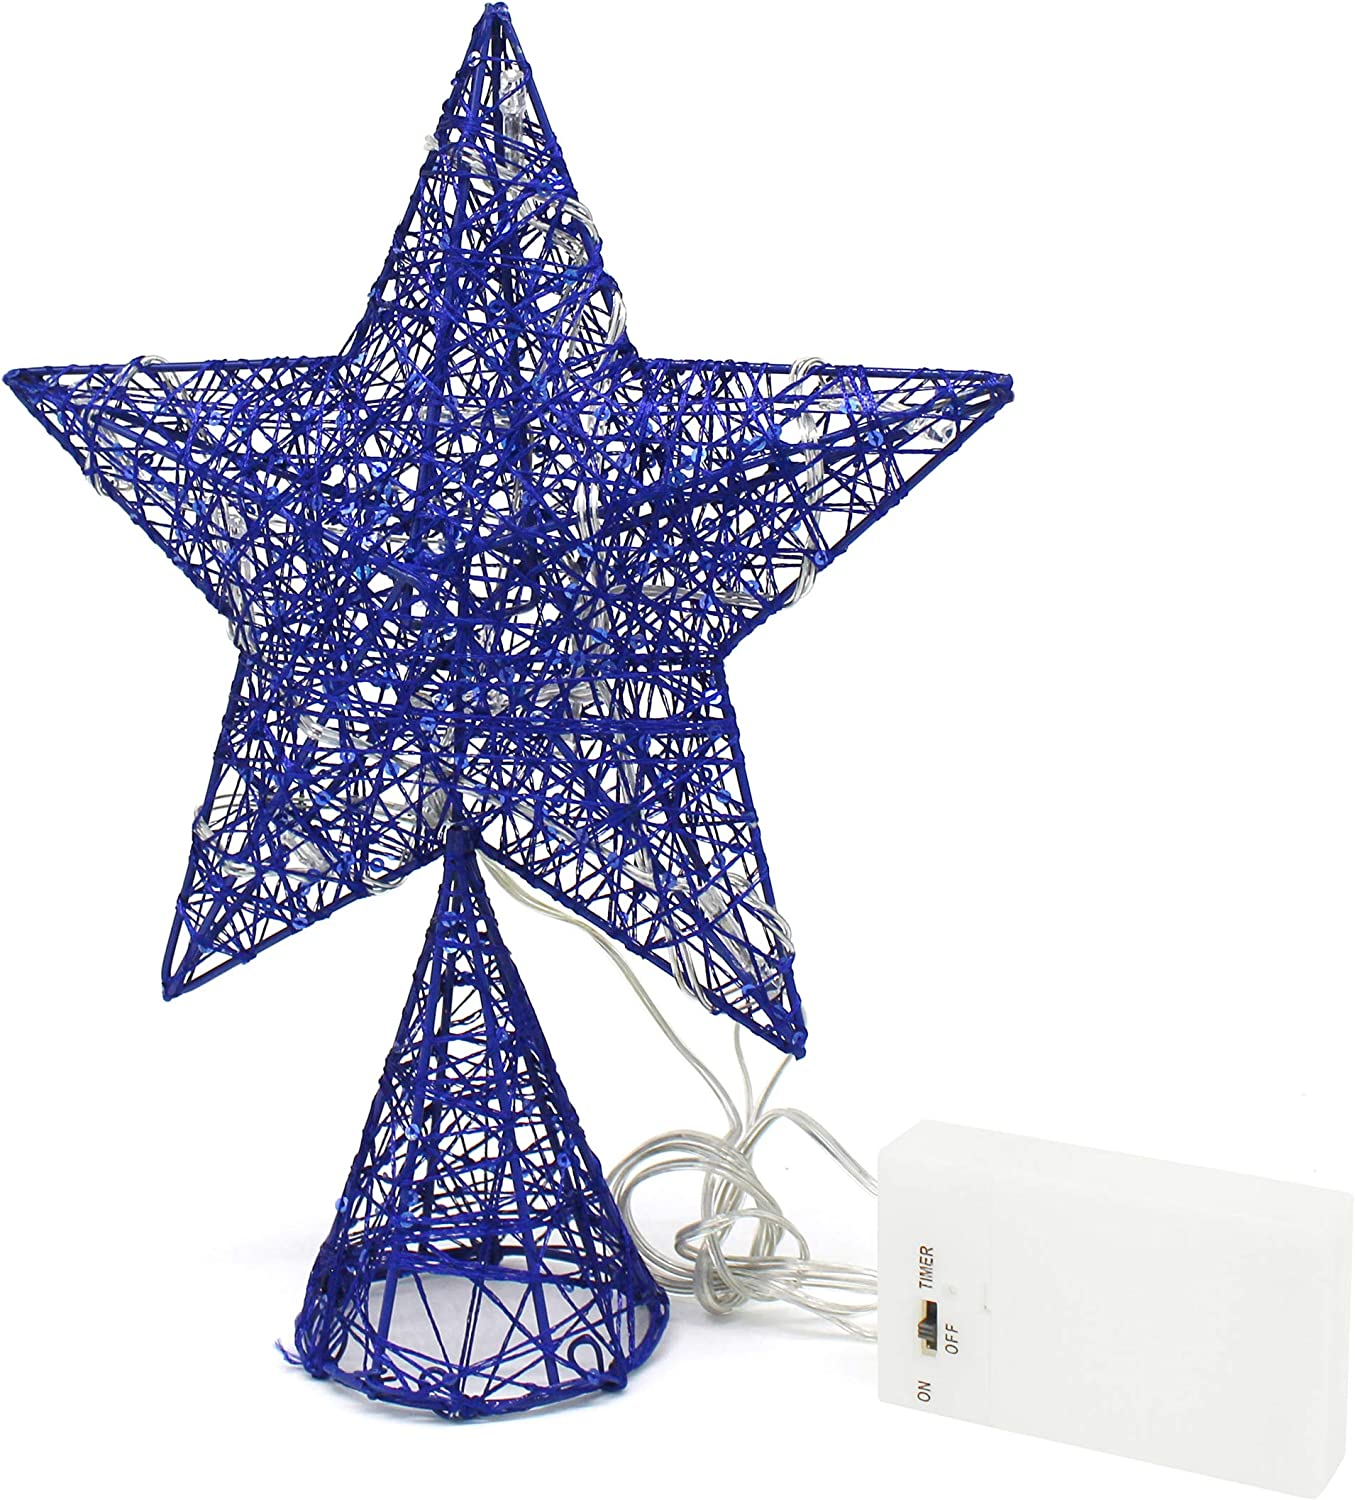 Cvhomedeco Blue Tree Top Star With Warm White Led Lights And Timer For Christmas Ornaments And Holiday Seasonal Décor 8 X 10 Inch Home Kitchen